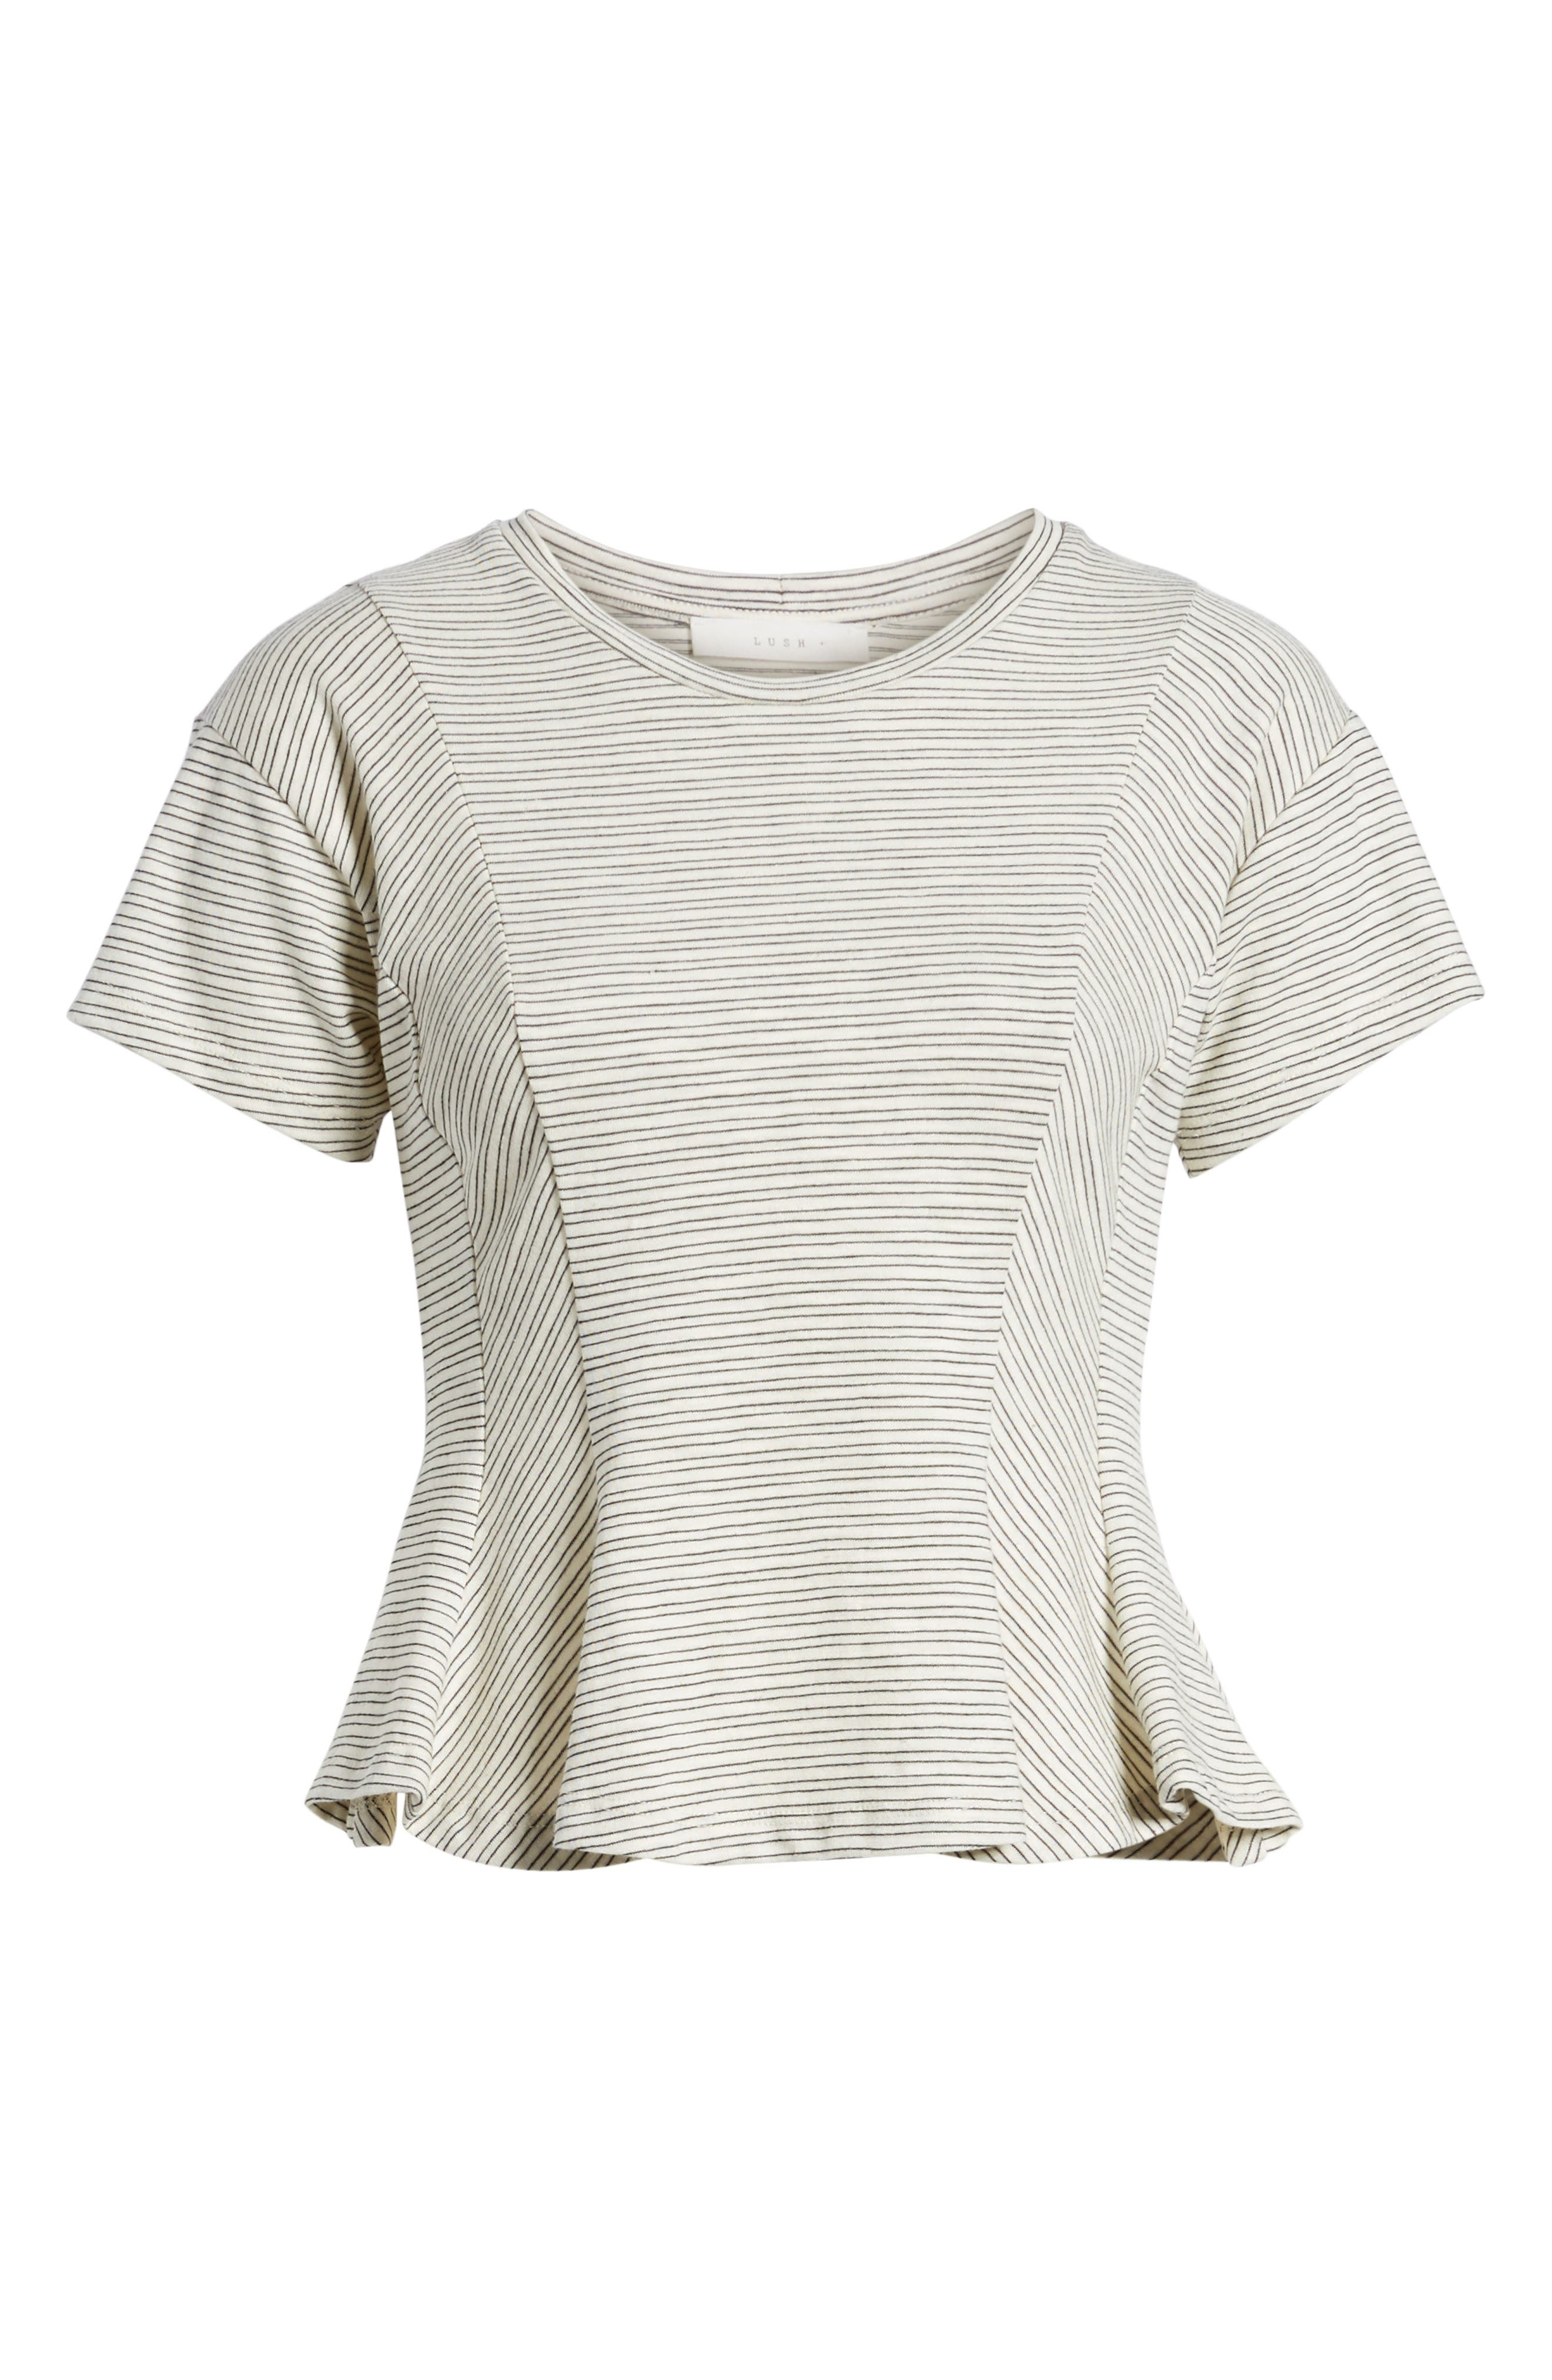 Stripe Peplum Tee,                             Alternate thumbnail 7, color,                             Ivory-Black Stripes